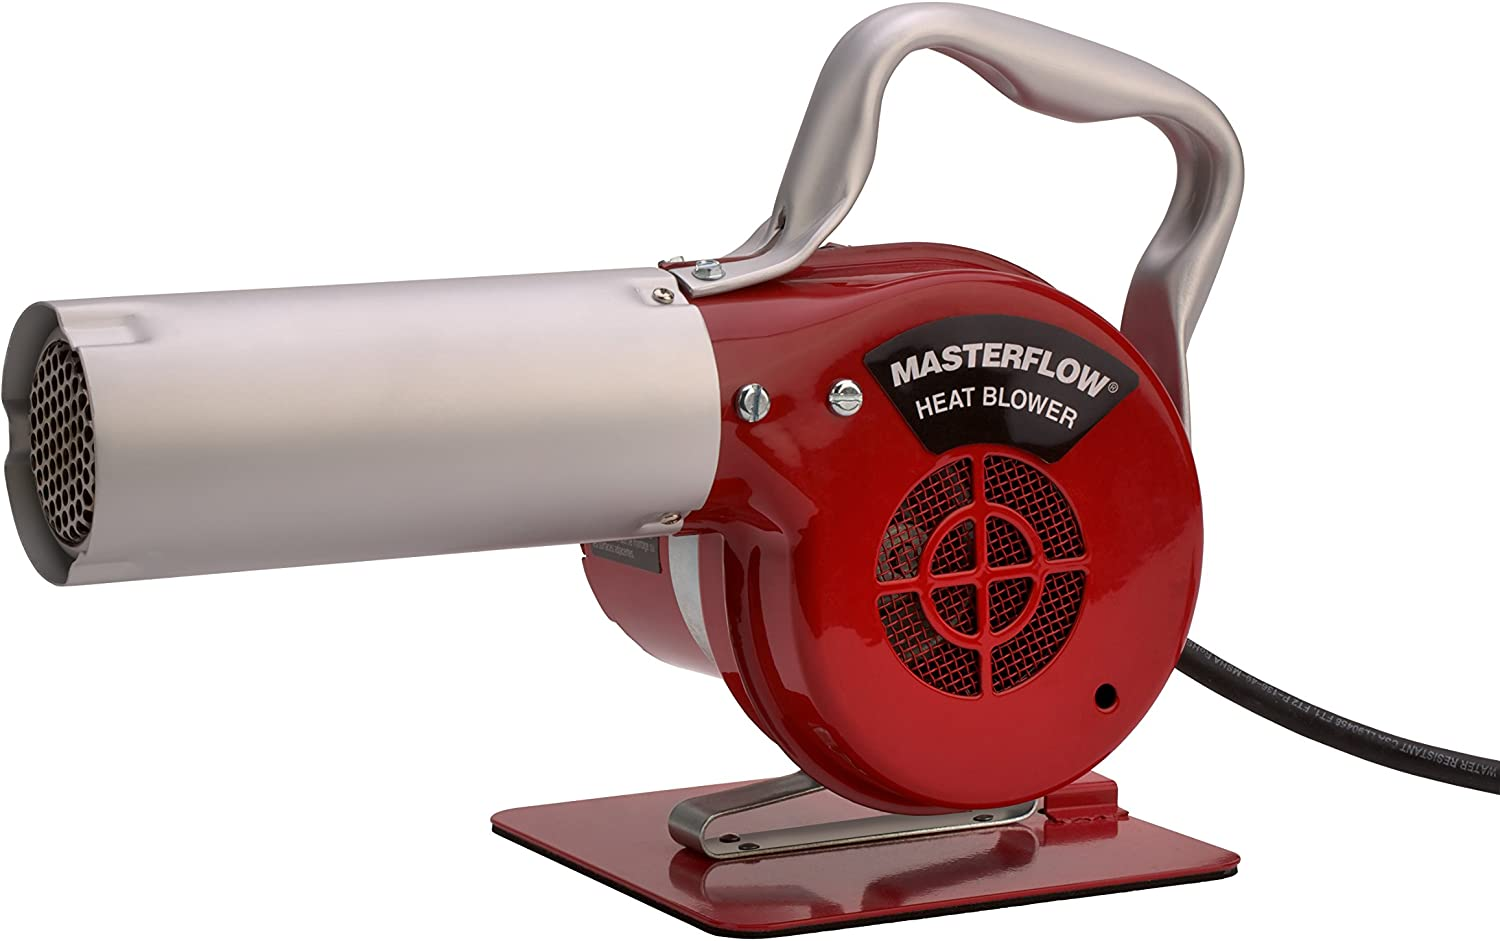 Master Appliance AH-751 Masterflow Series Heat Blower, 750-Degree Fahrenheit 120V 2160 Watts, 18 Amps with 20 Amp NEMA Plug